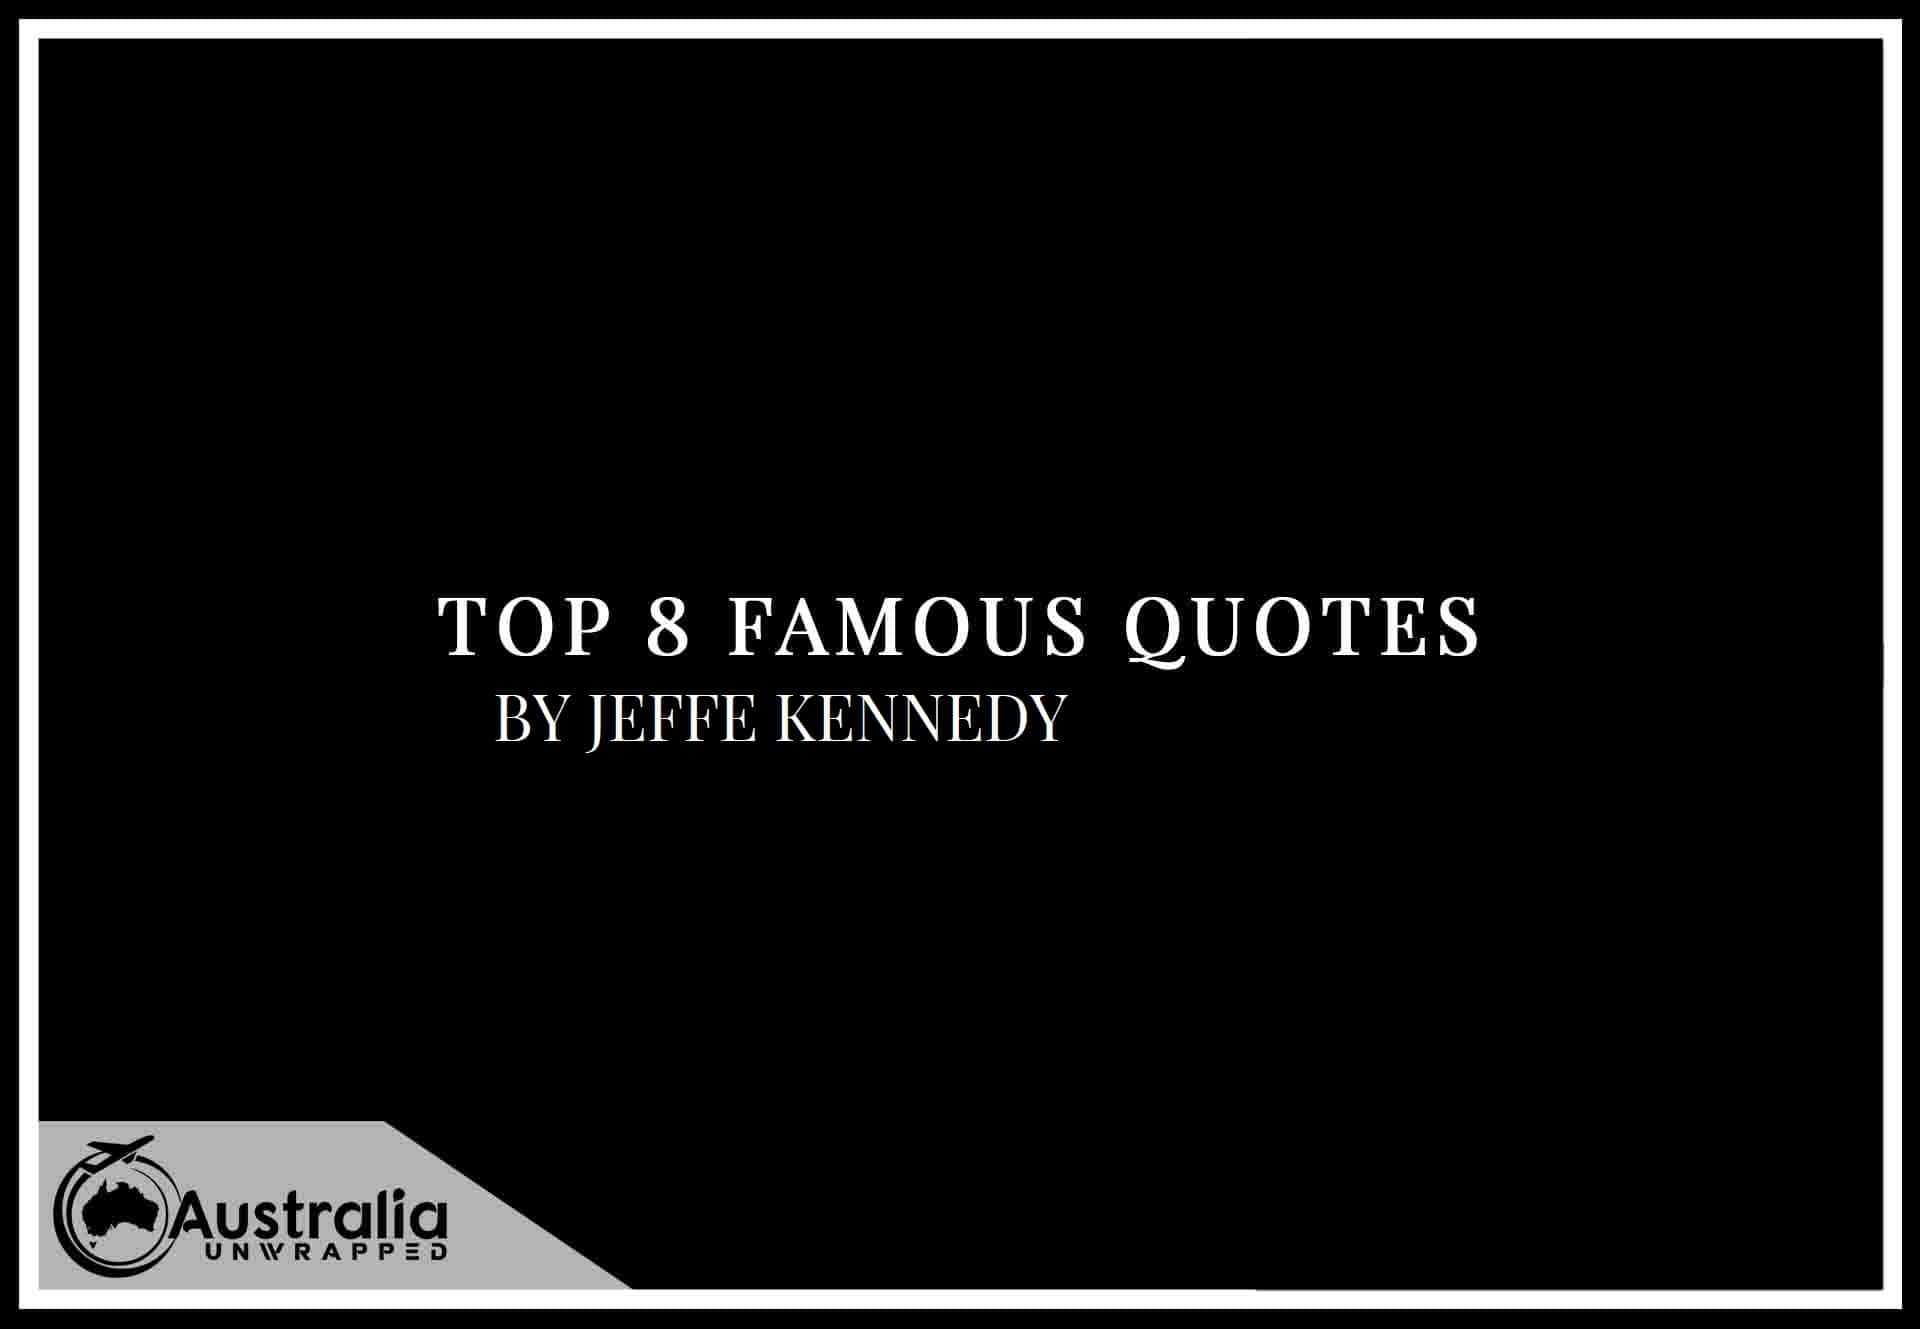 Top 8 Famous Quotes by Author Jeffe Kennedy